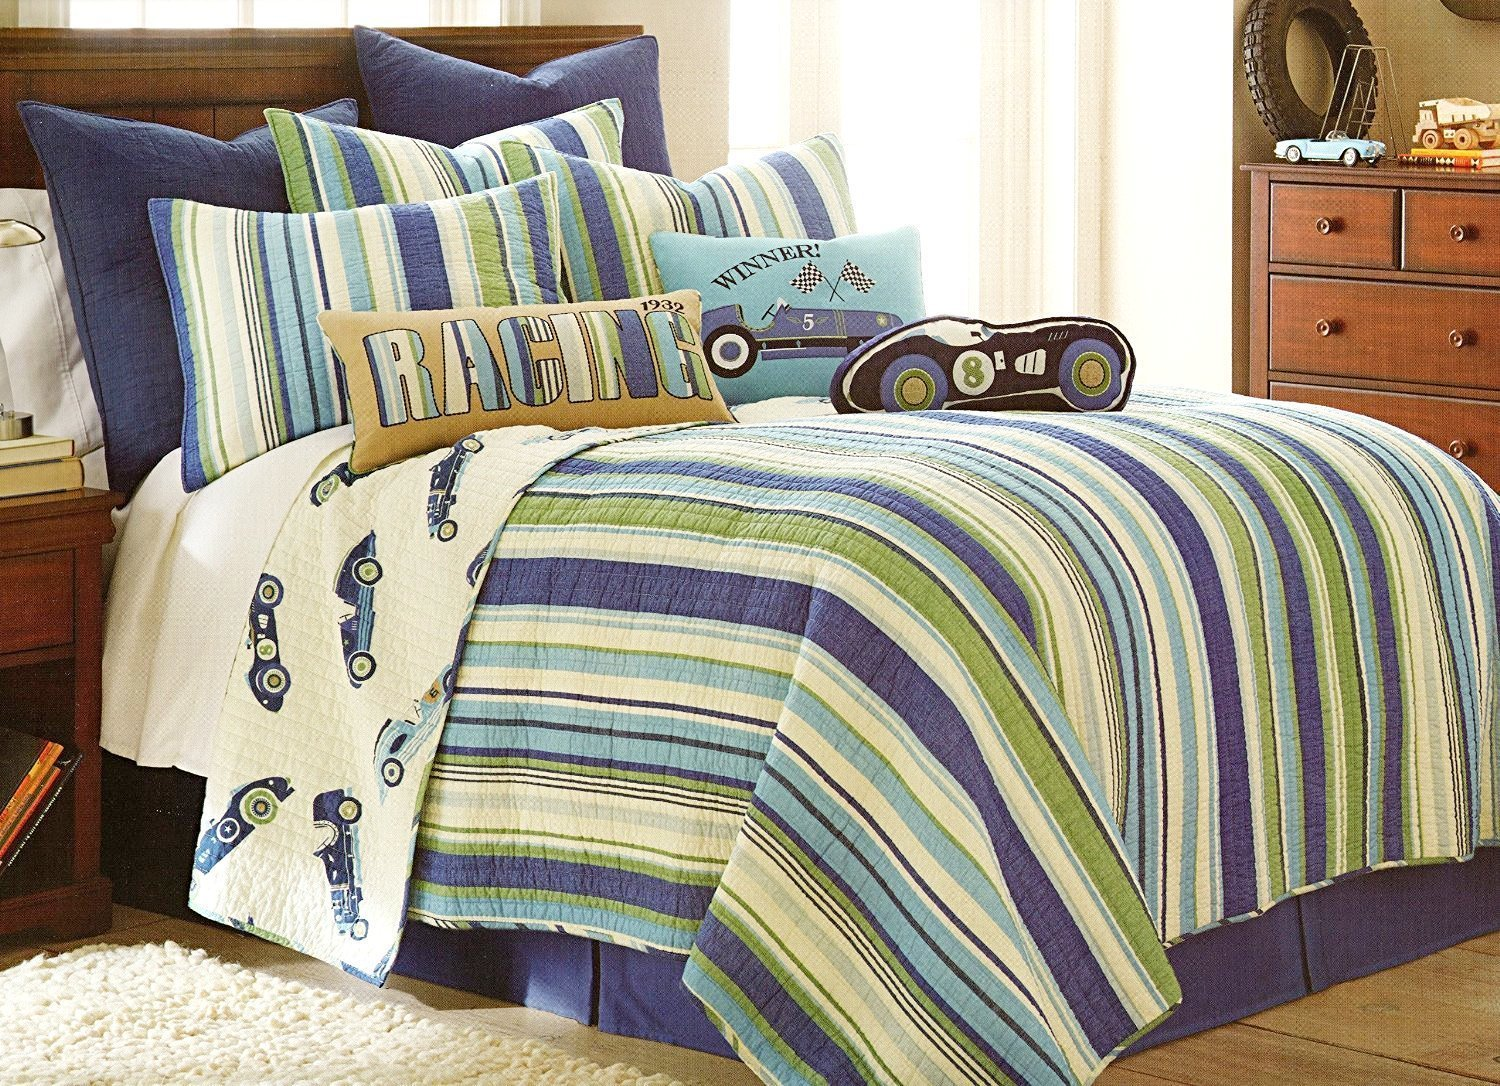 4-pc TWIN SIZE Hot Rod QUILT & SHEET SET (TWIN SIZE) - Retro Race Cars Reversible Stripes Quilted Bedding Bedspread